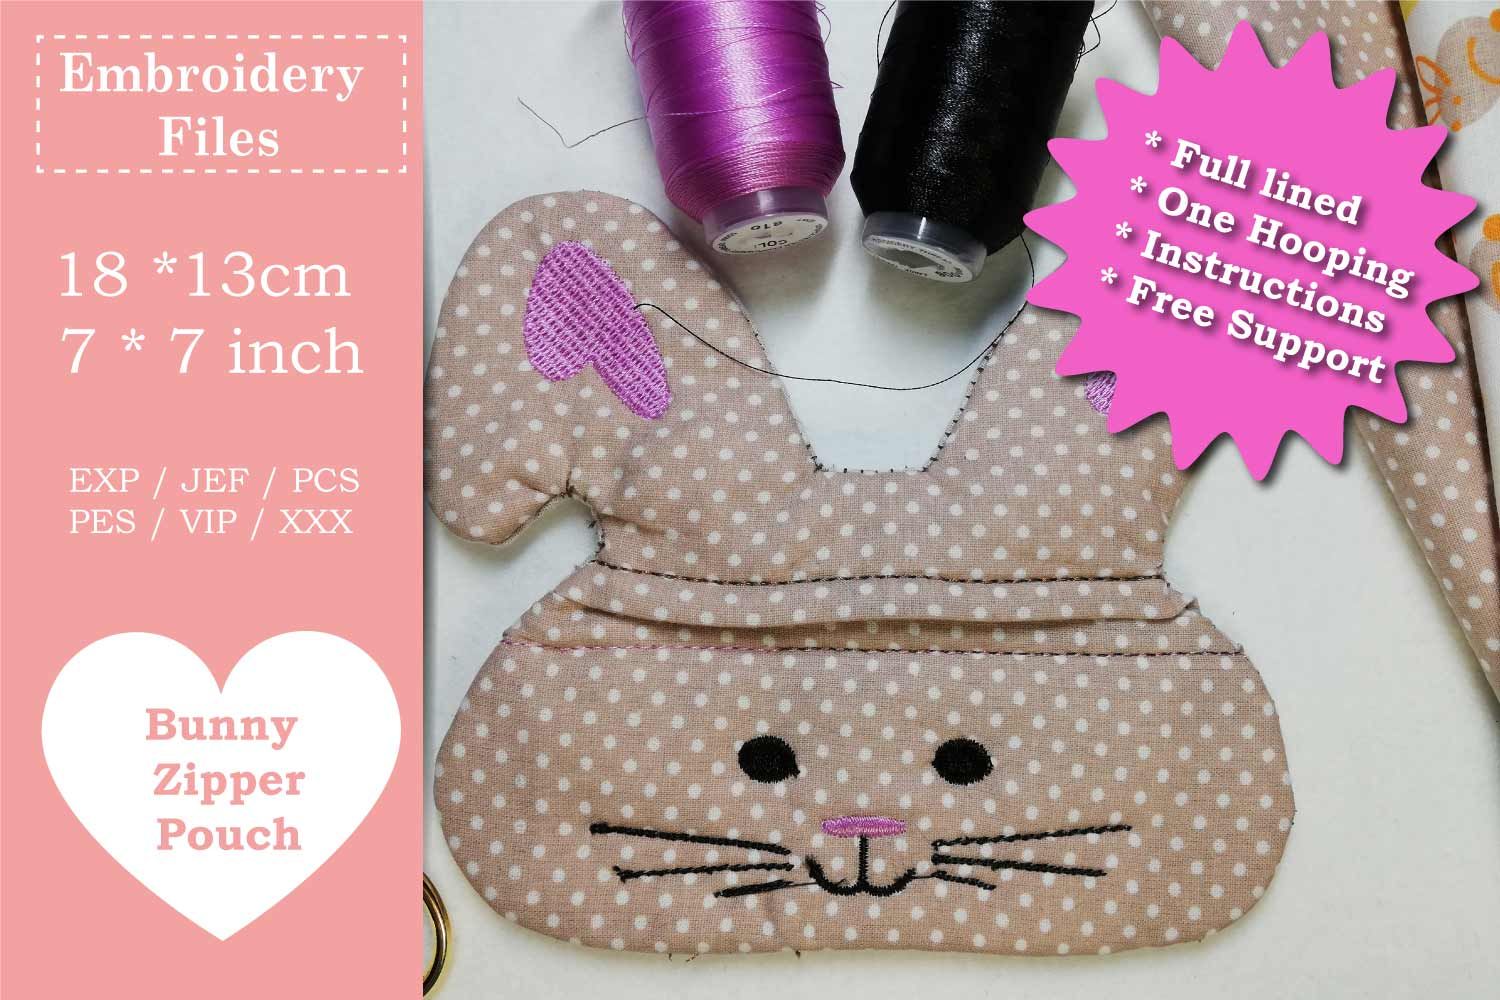 ITH Easter Bundle - Machine Embroidery Files - 10 Projects example image 15